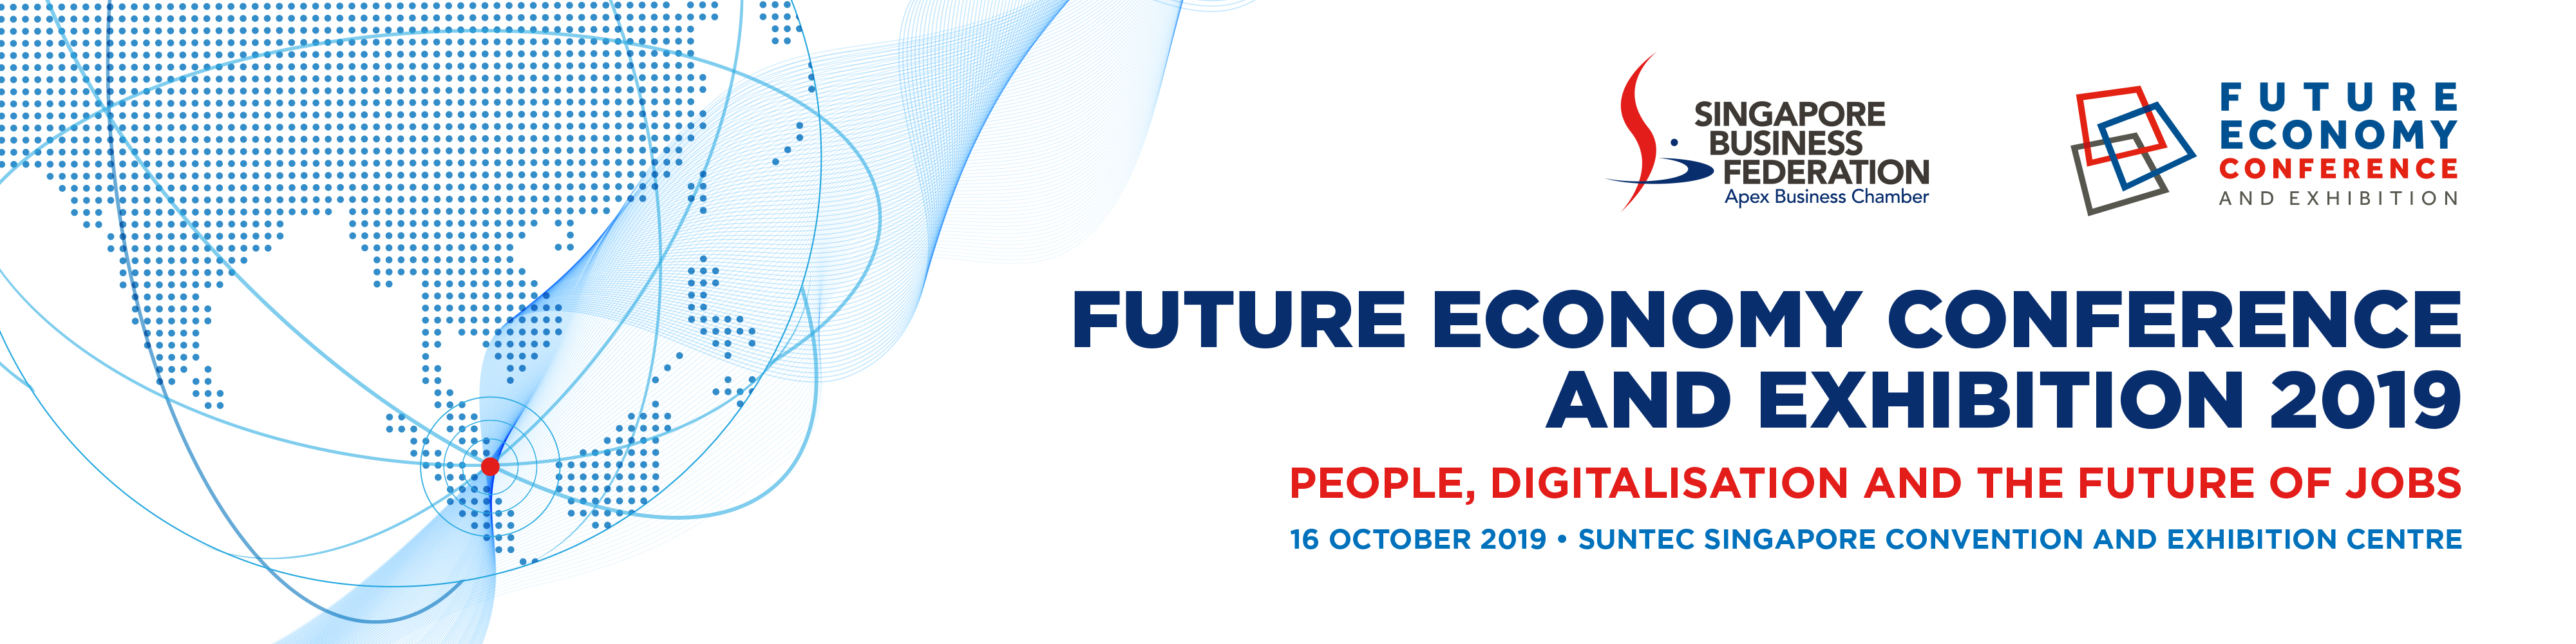 Future Economy Conference and Exhibition 2019 Banner Image